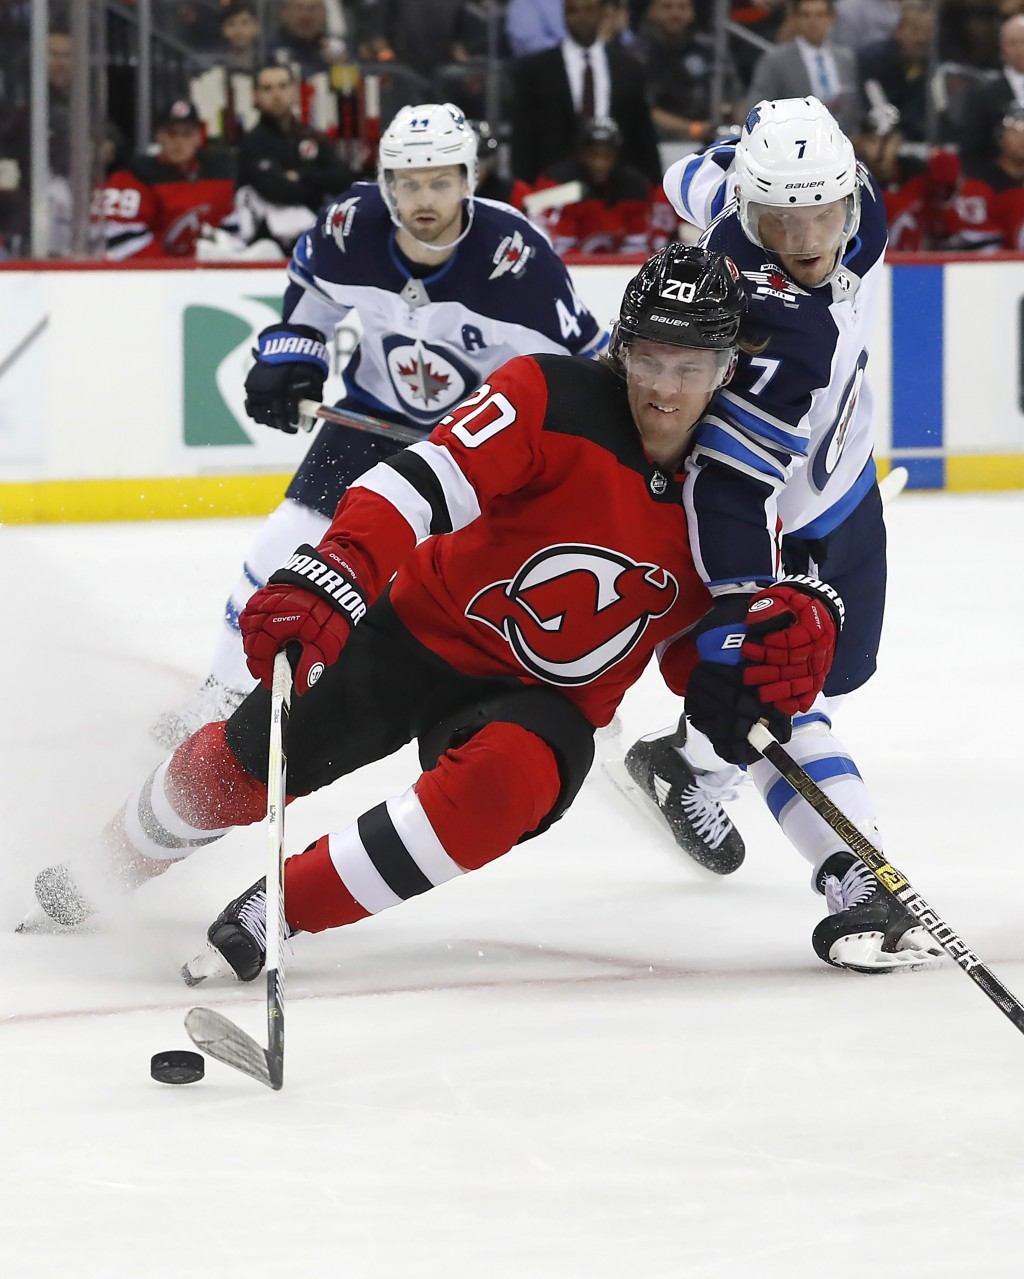 New Jersey Devils center Blake Coleman (20) works against Winnipeg Jets defenseman Dmitry Kulikov (7) for the puck during the second period of an NHL